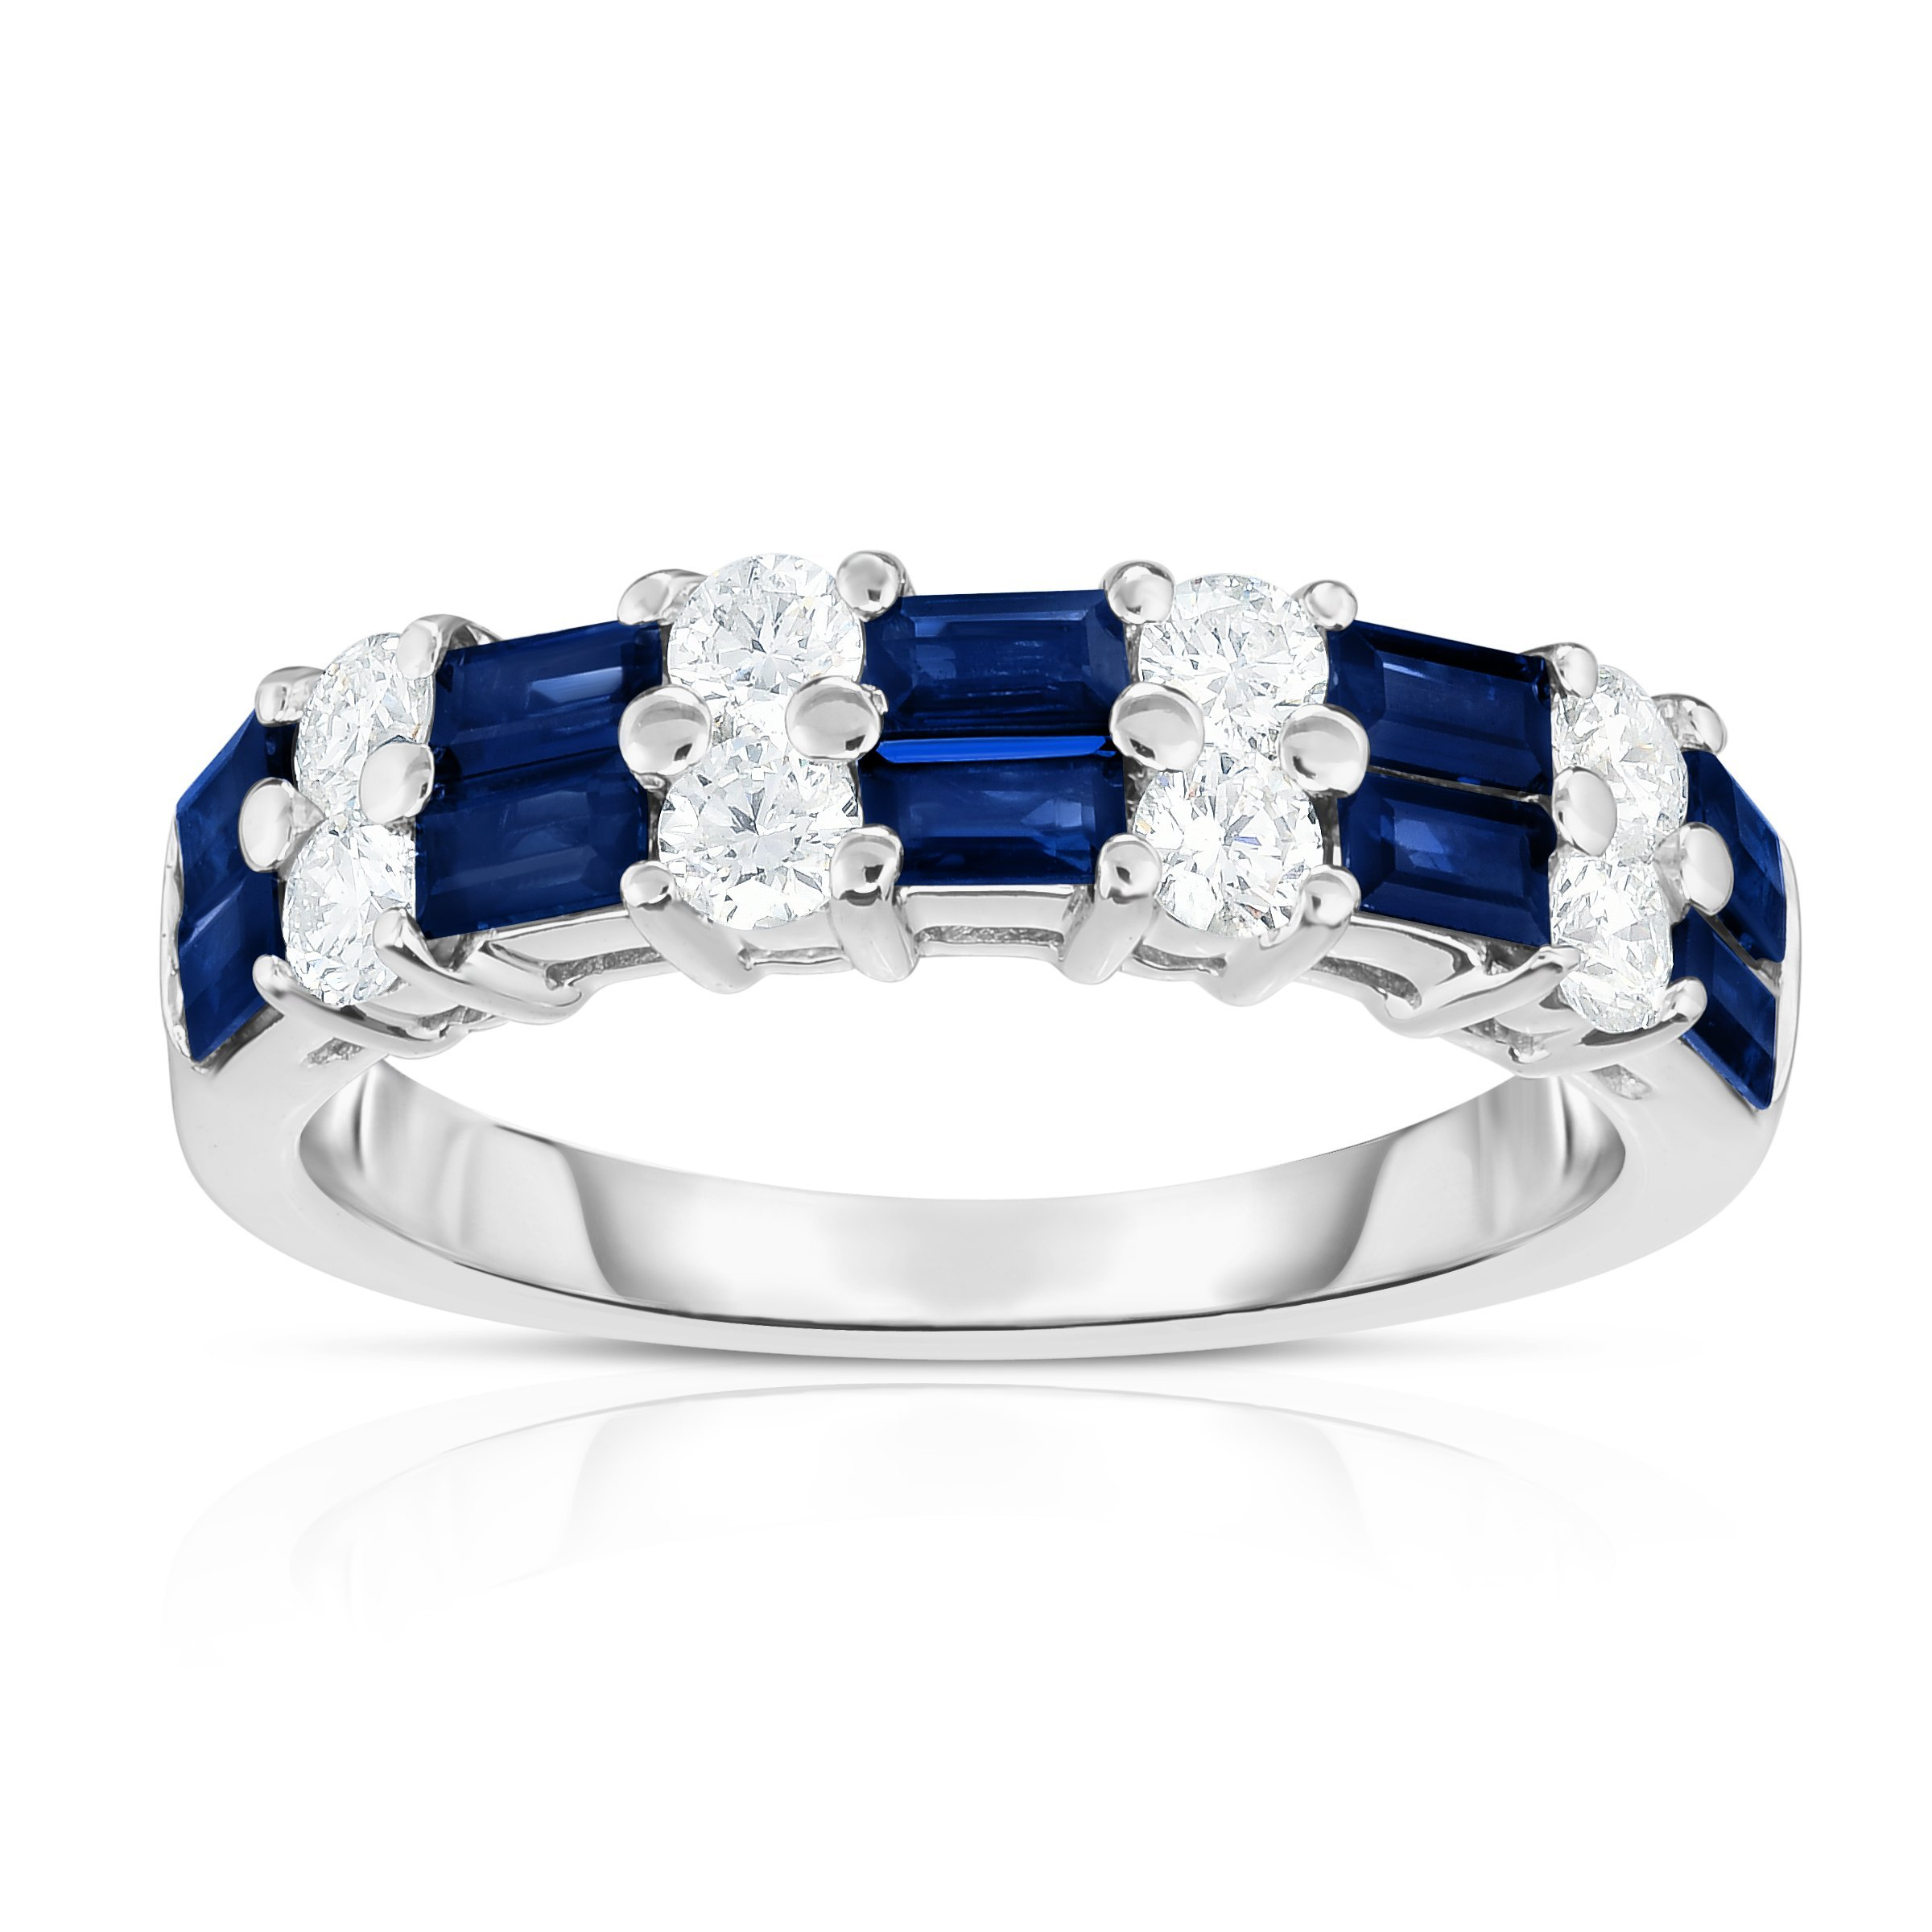 Noray Designs 14K White Gold Blue Sapphire & Diamond (0.50 Ct, G-H Color, SI2-I1 Clarity) Ring